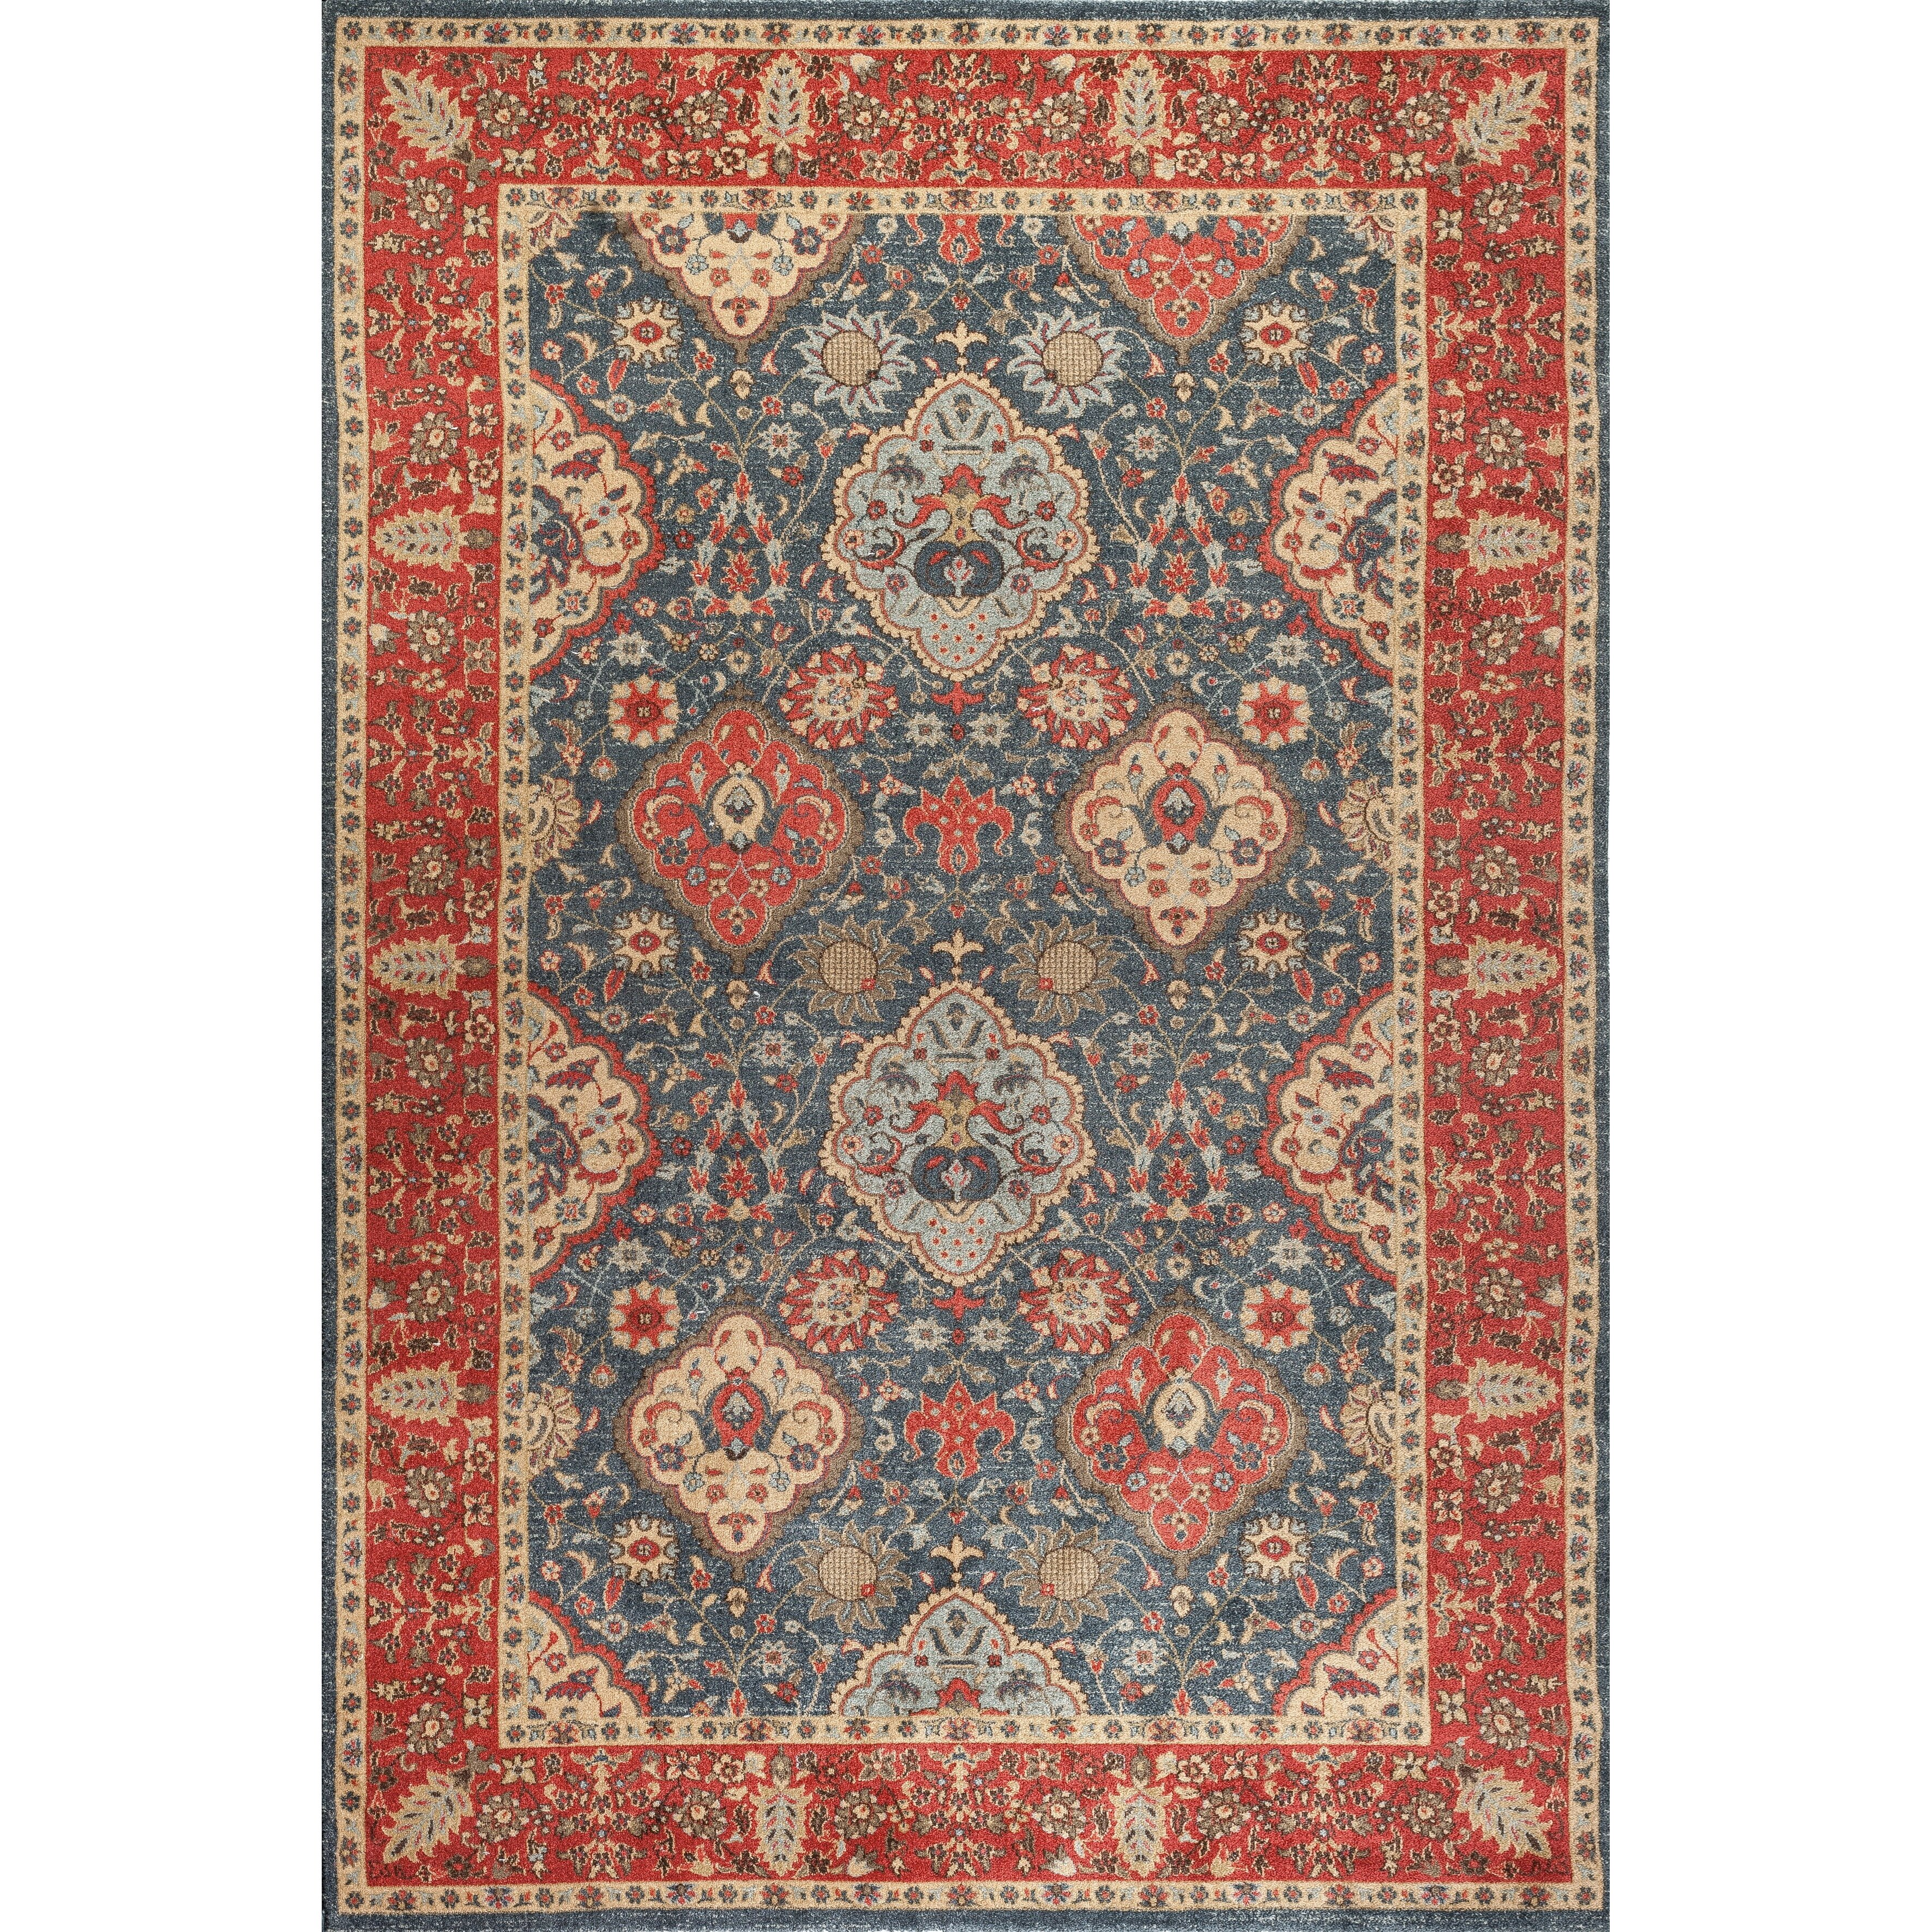 Synthetic rugs vs wool rugs roselawnlutheran for Accent rug vs area rug